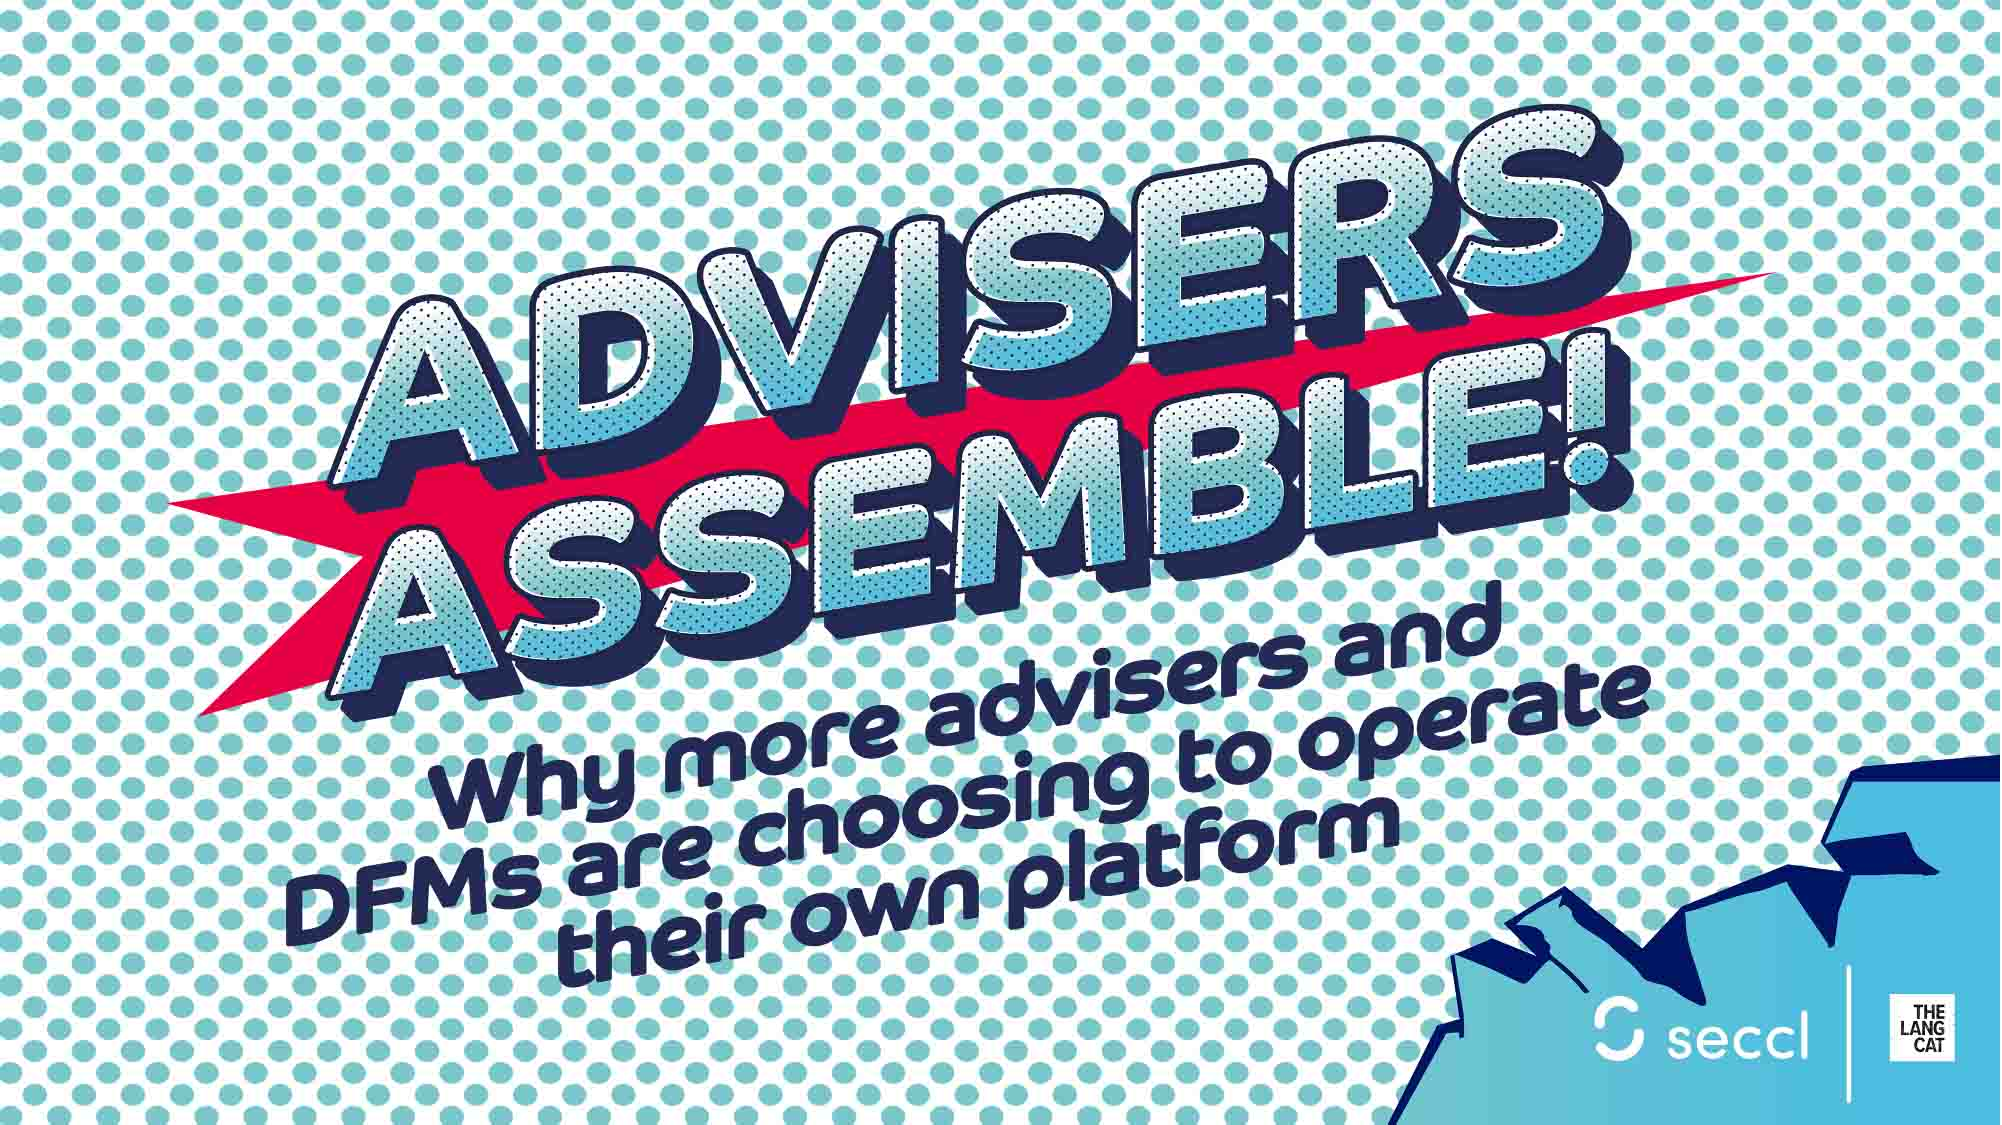 Advisers Assemble! Why more advisers and DFMs are choosing to operate their own platform